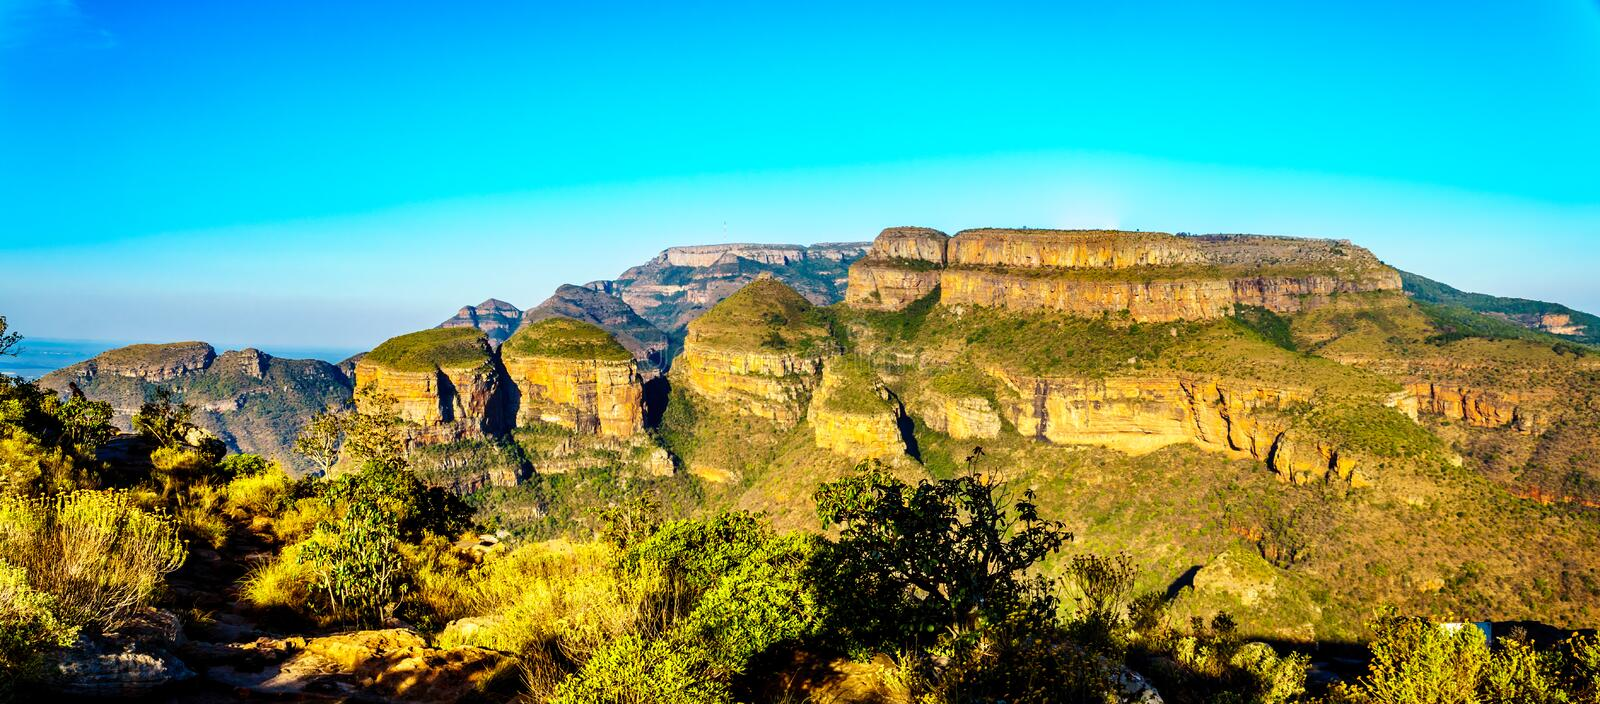 View of the Three Rondavels at the Blyde River Canyon viewpoint on the Panorama Route stock photography